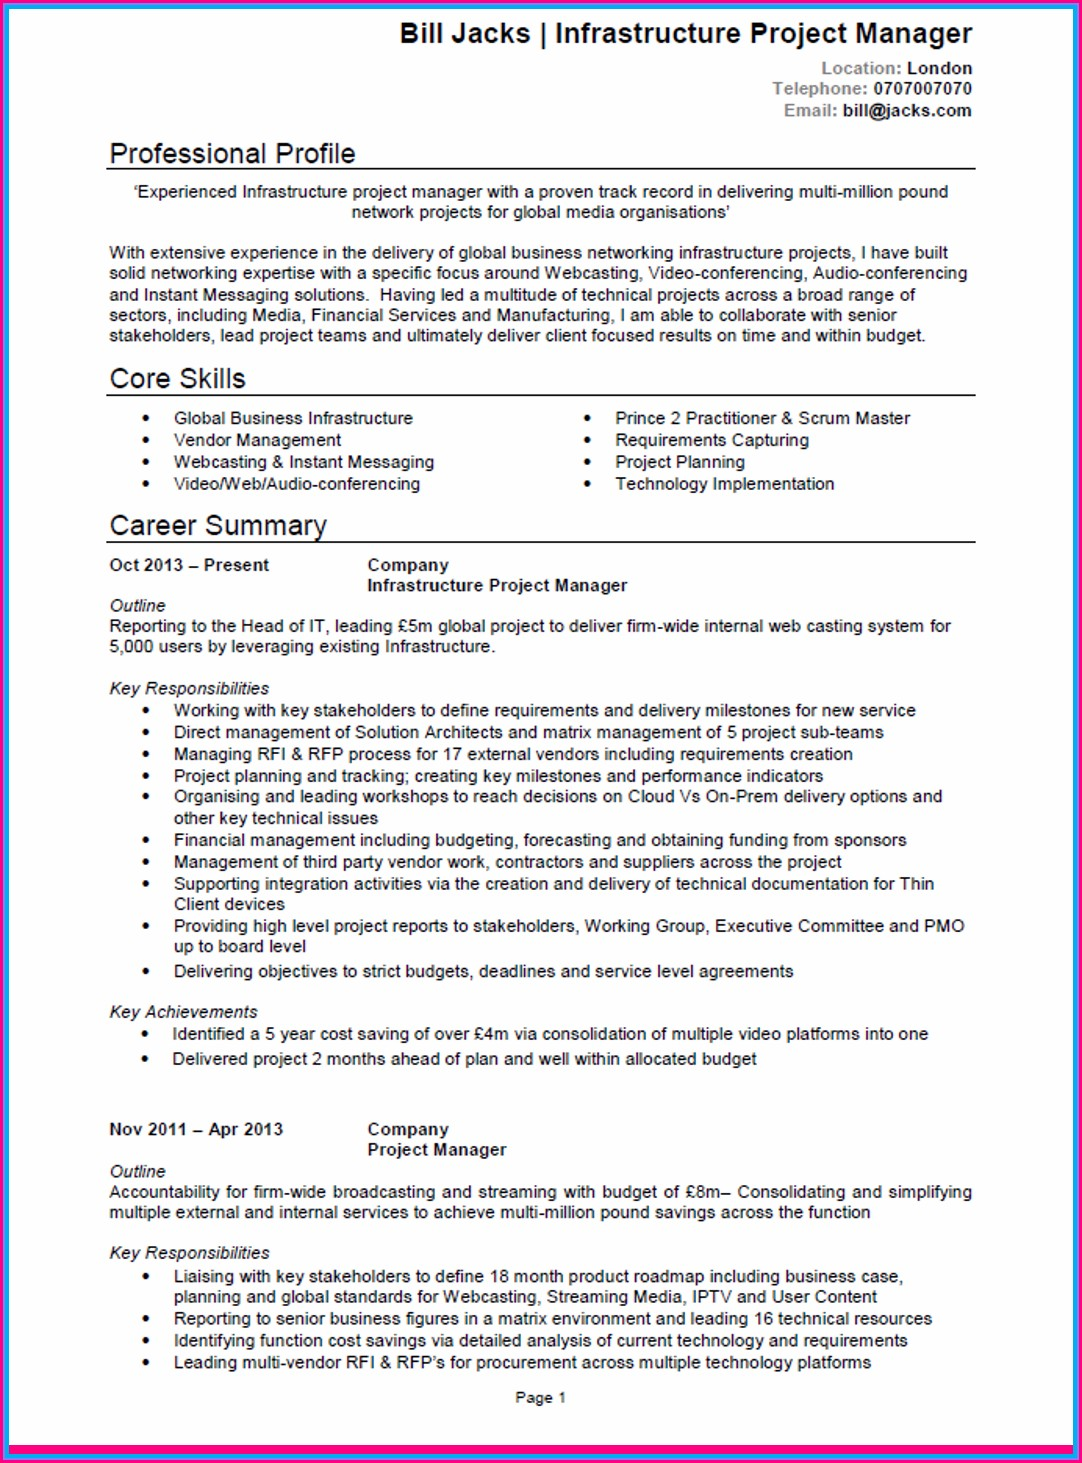 Curriculum Vitae Samples For Project Managers